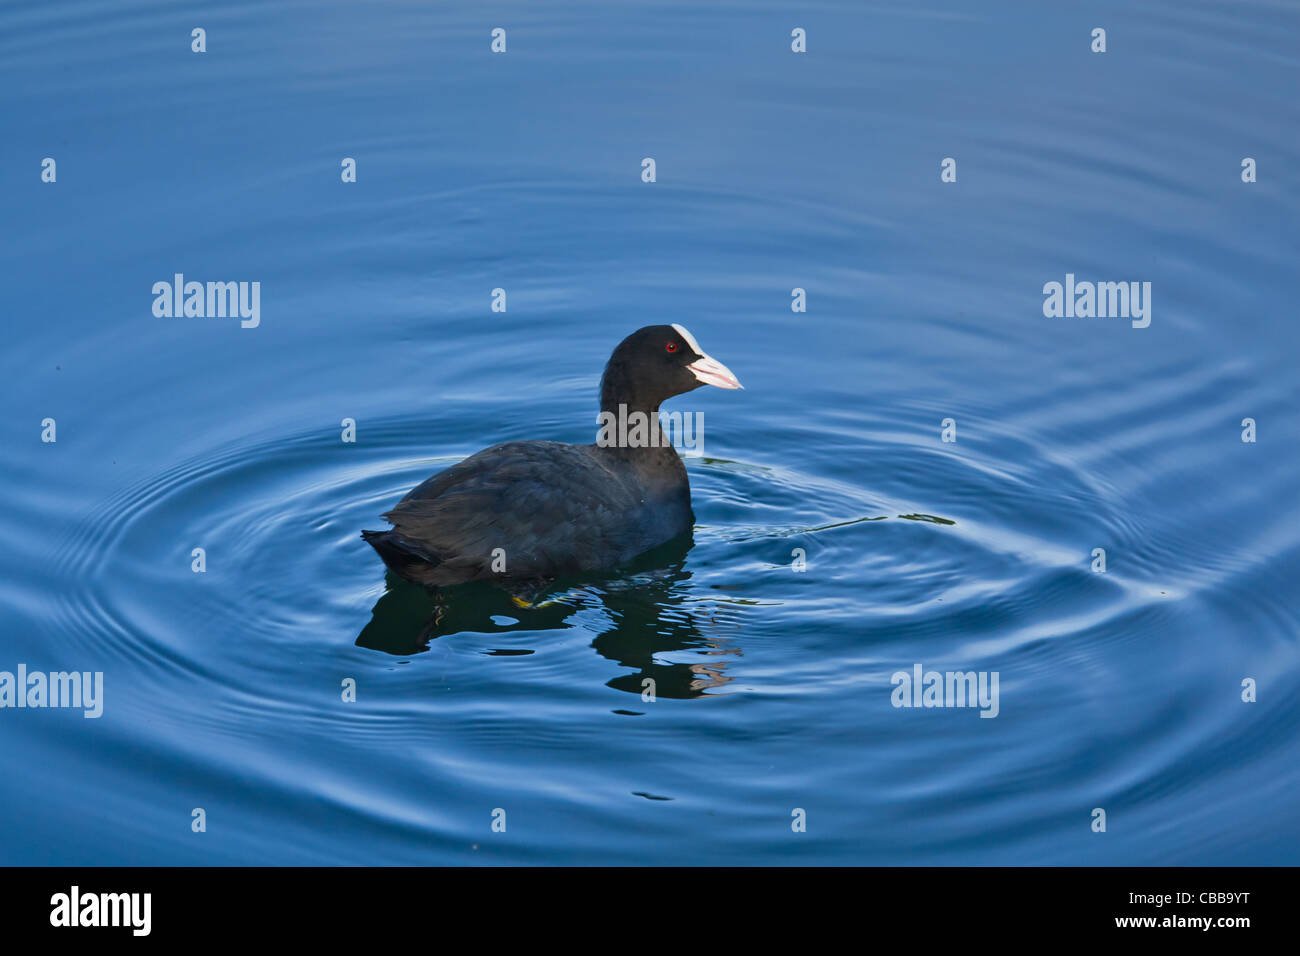 Eurasian Coot in the water. - Stock Image